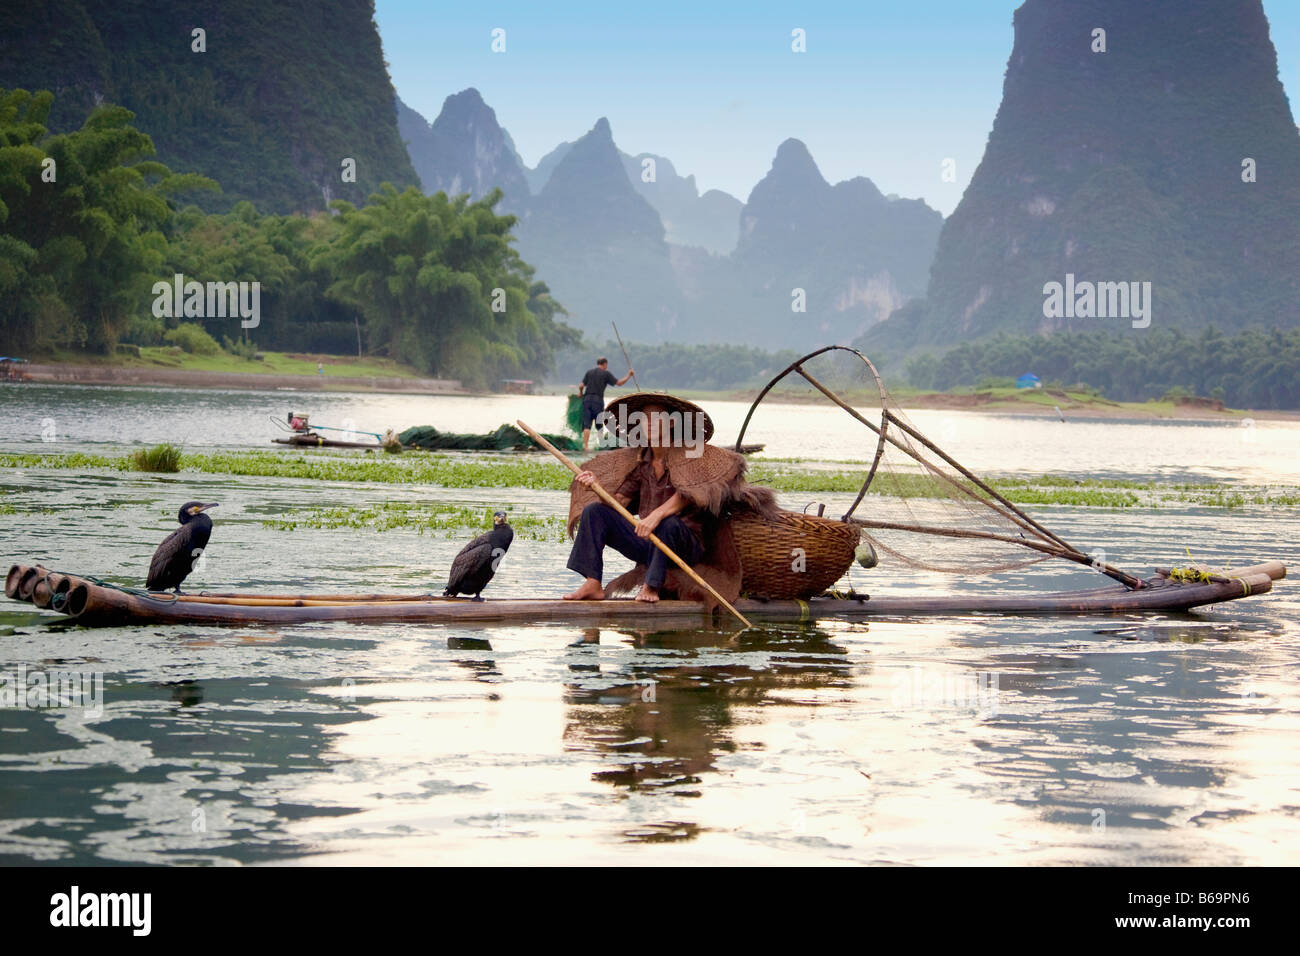 Fisherman fishing in a river with a hill range in the background, Guilin Hills, XingPing, Yangshuo, Guangxi Province, - Stock Image